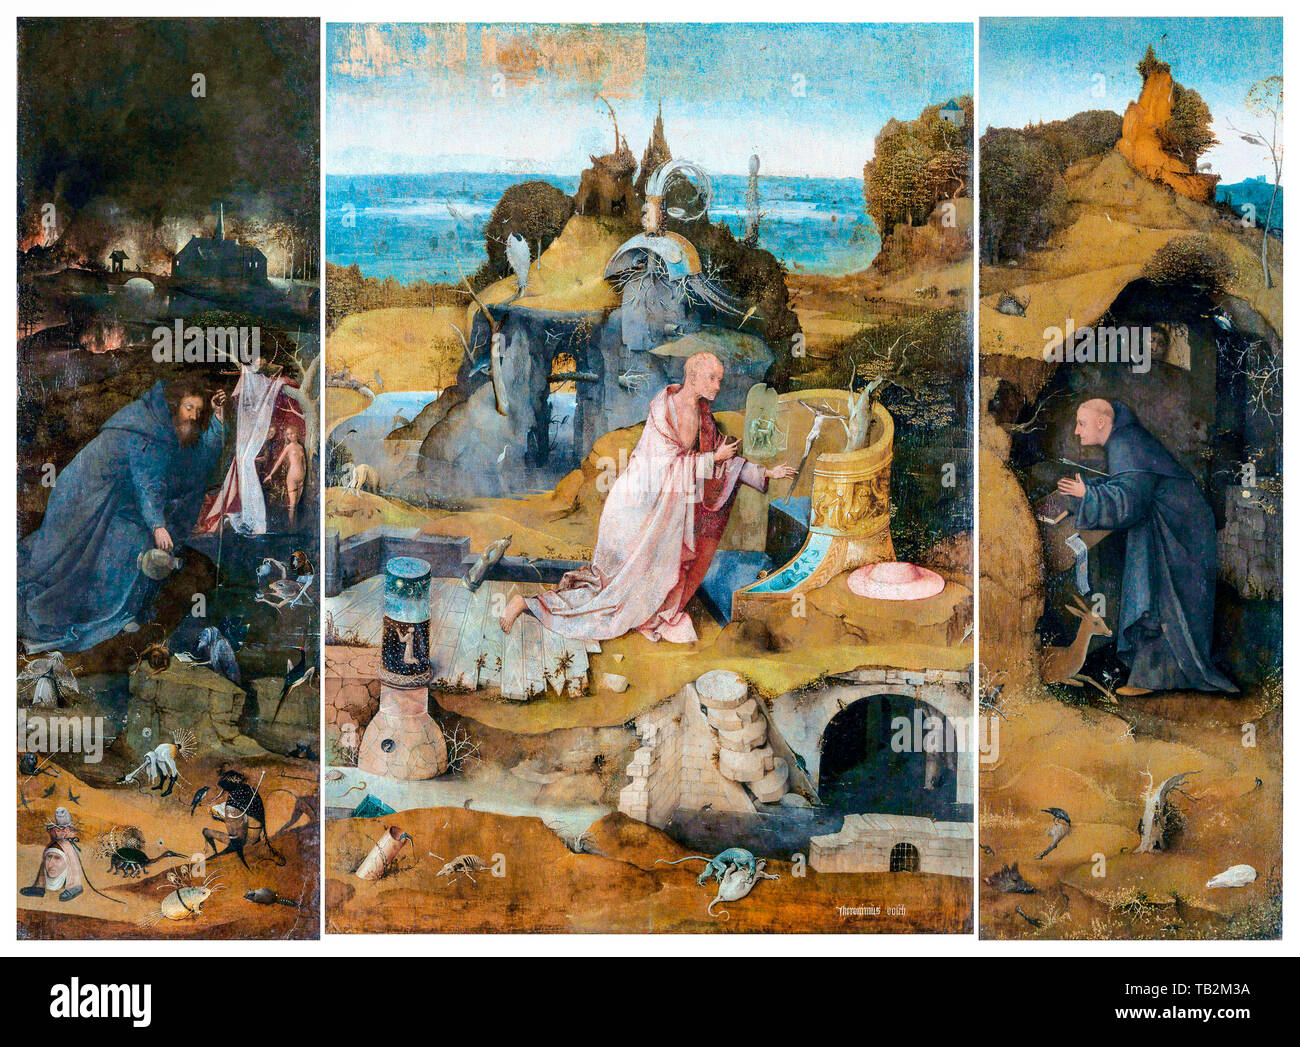 Hieronymus Bosch, The Hermit Saints Triptych, painting, circa 1493 - Stock Image